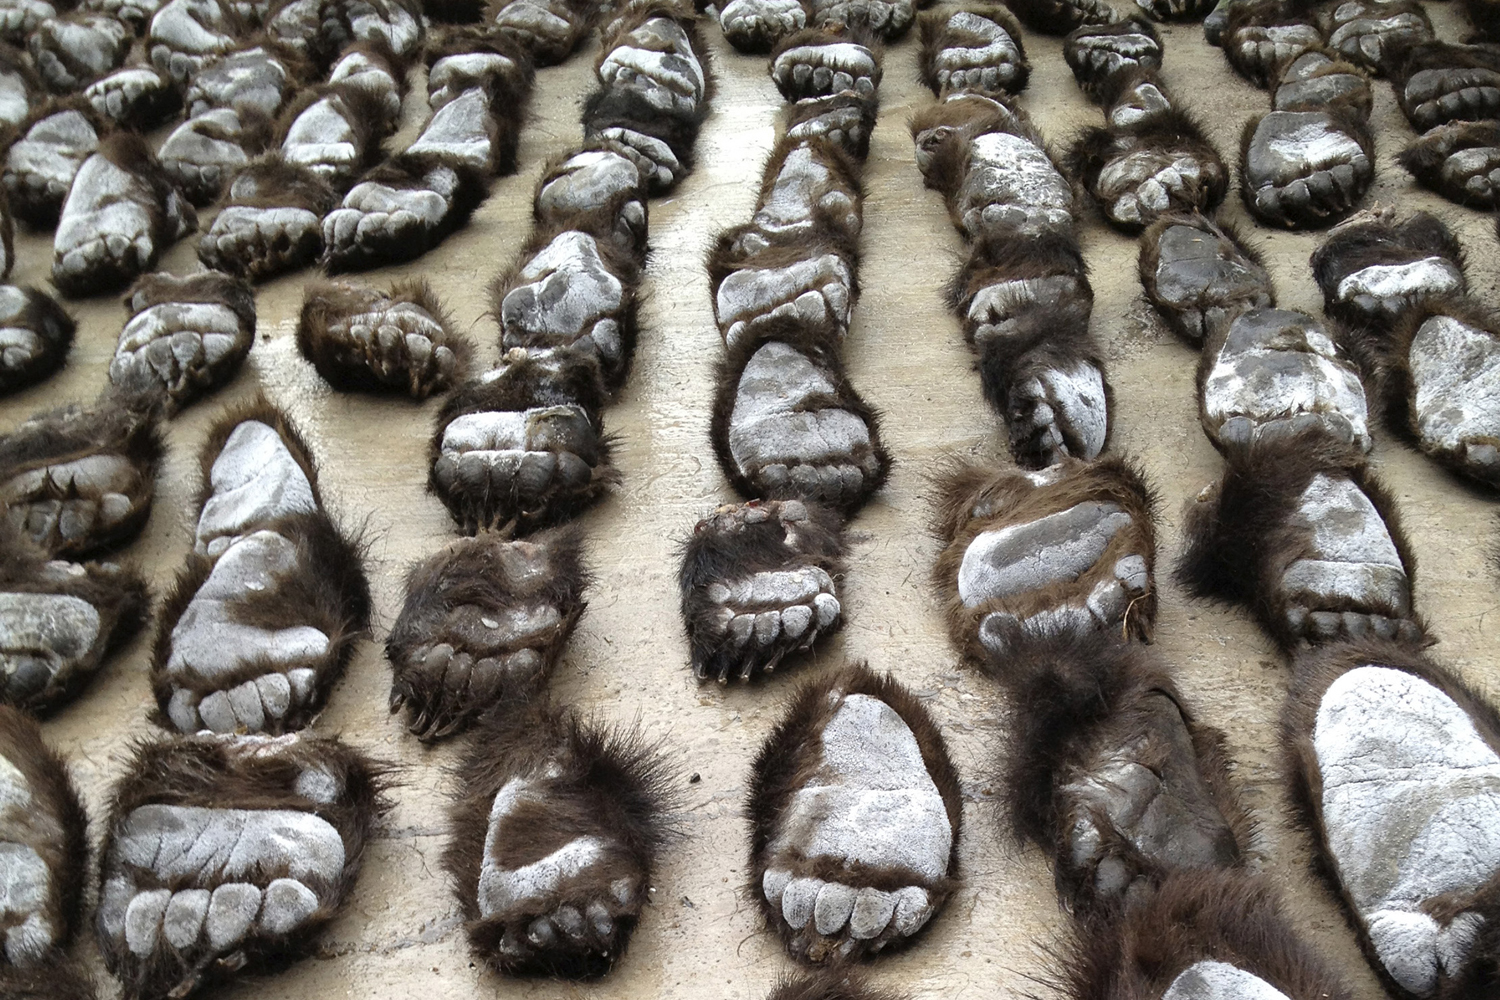 June 15, 2013. Smuggled bear paws are recovered by Chinese customs officers at the China-Russia border in Manzhouli, Inner Mongolia Autonomous Region.